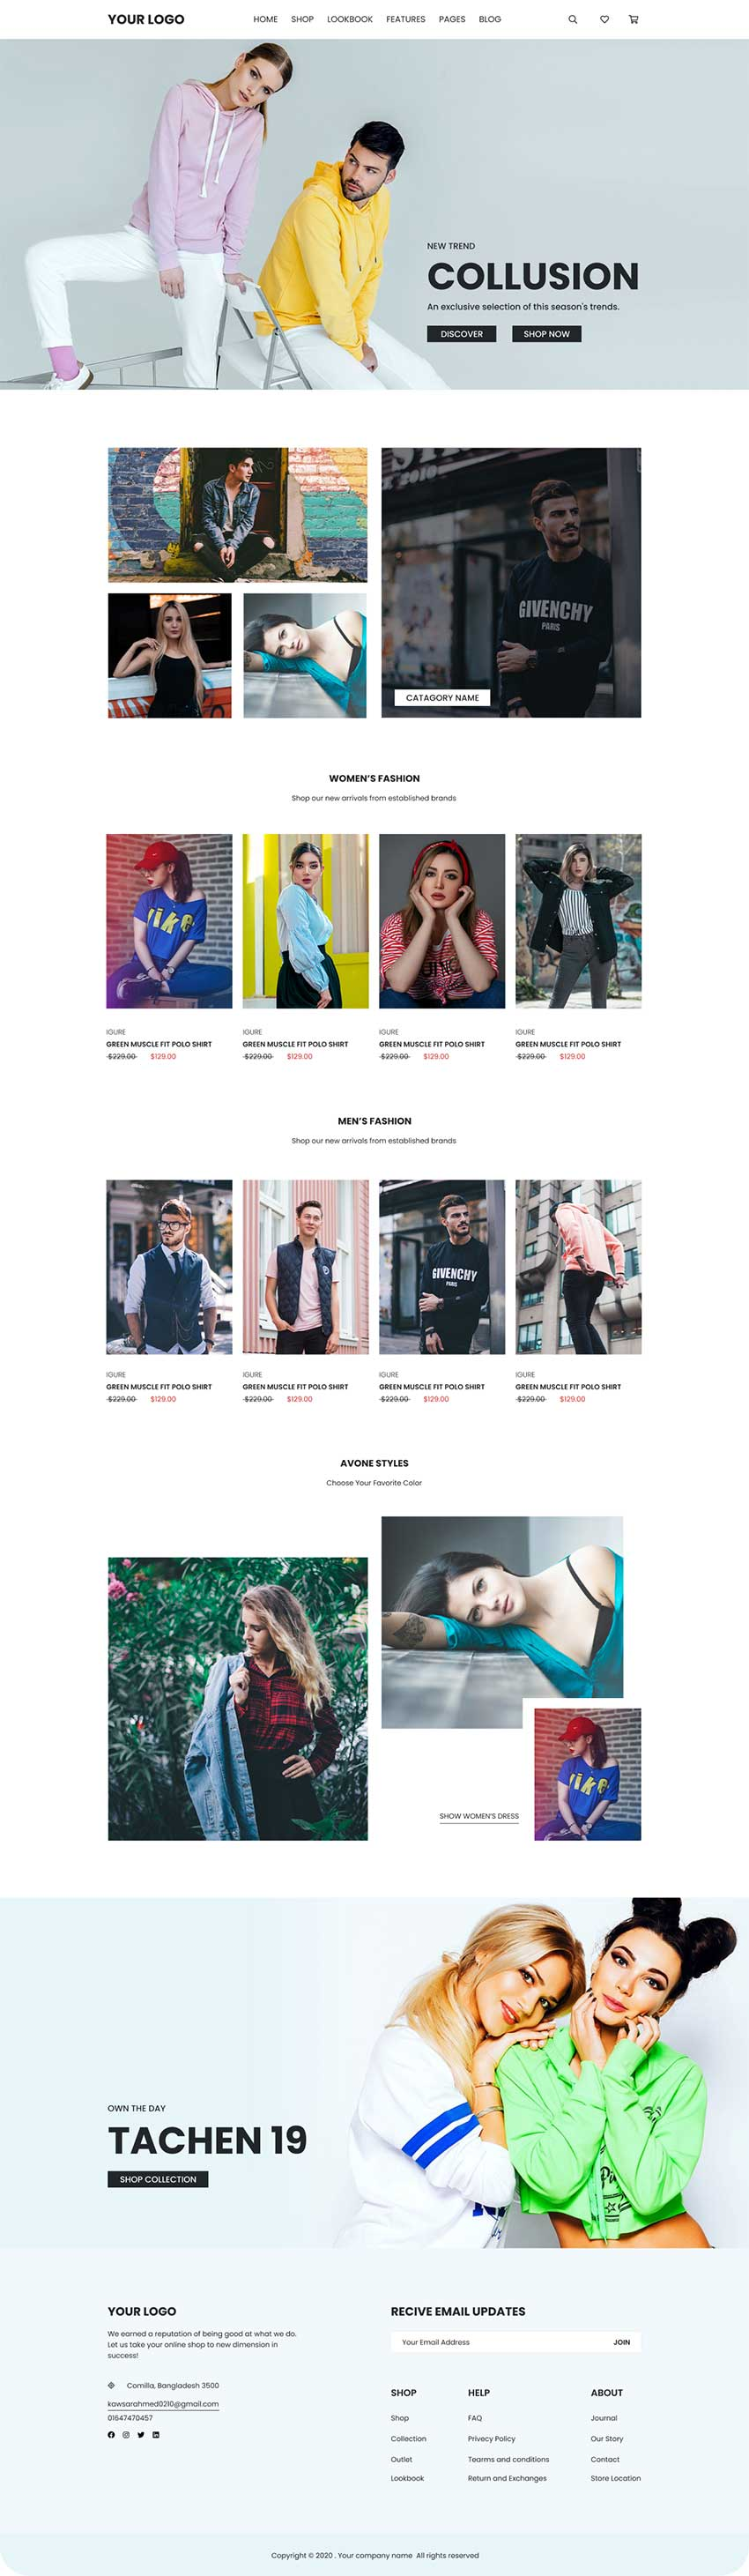 Fashion site web template figma PSD adobexd